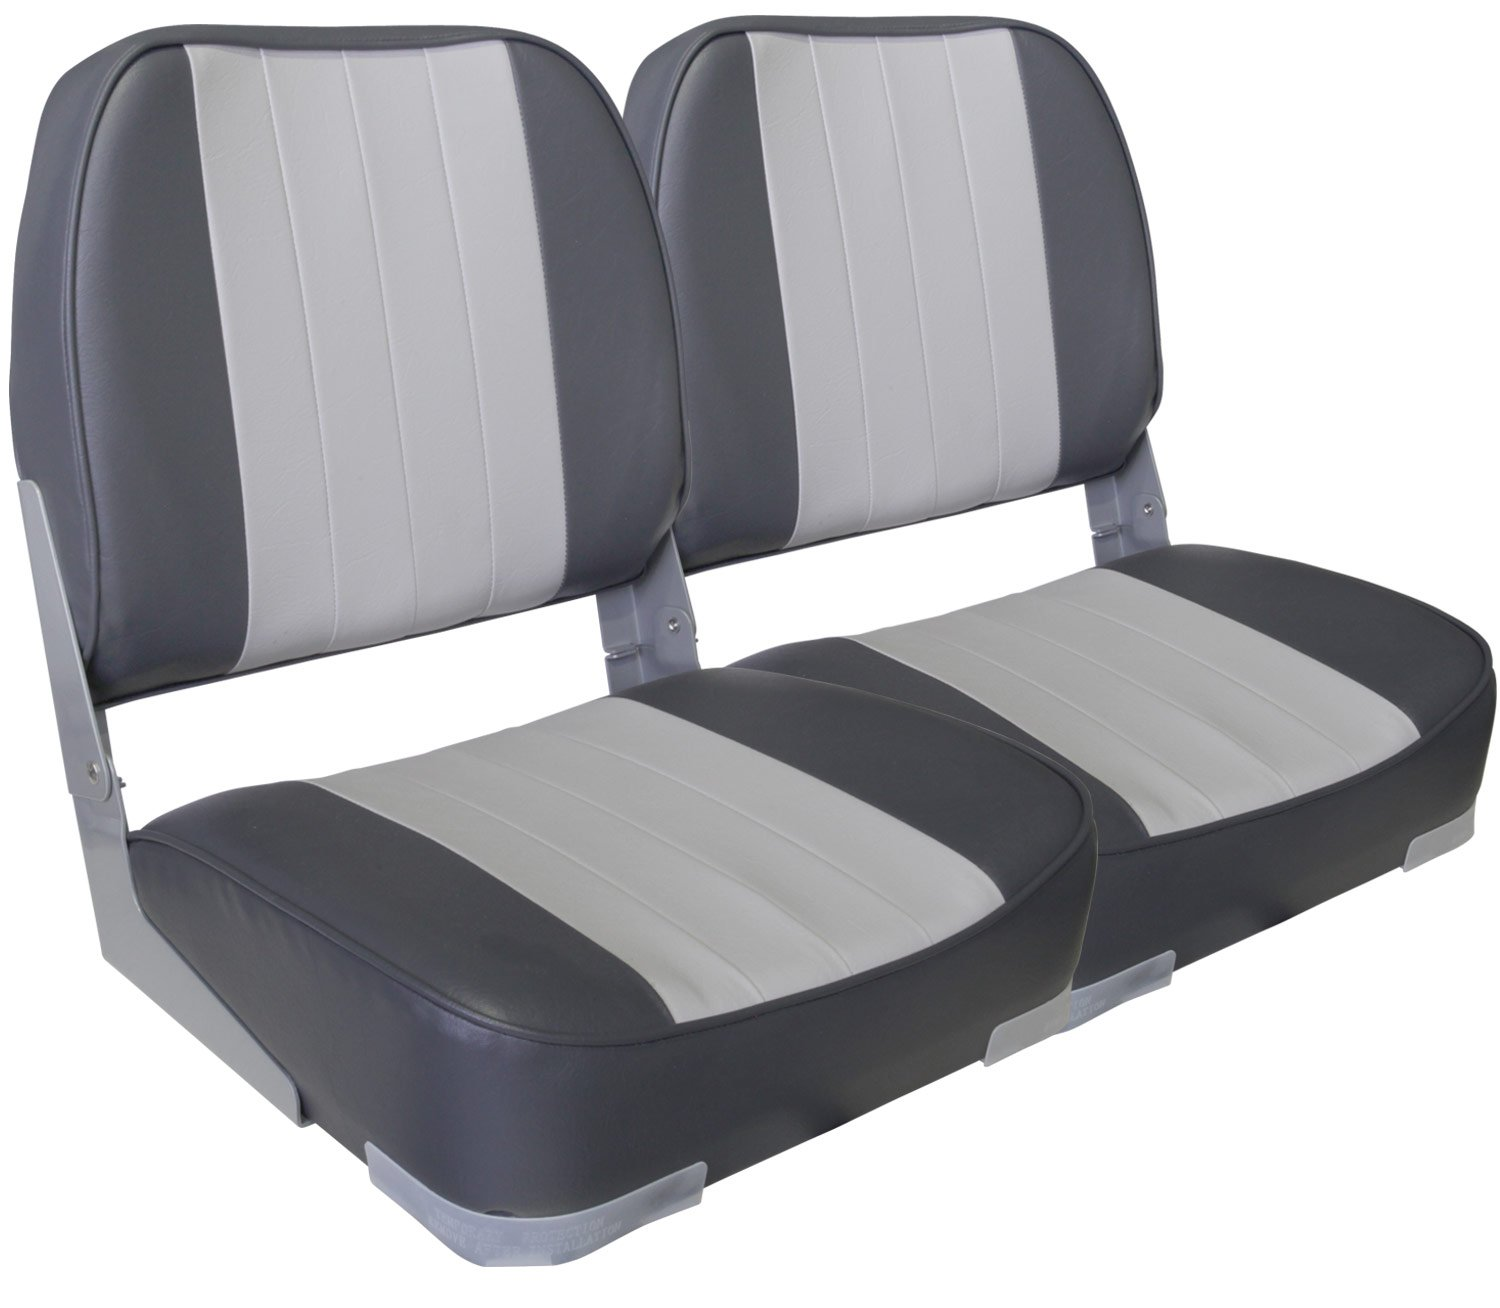 Leader Accessories A Pair of New Low Back Folding Boat Seats(2 Seats) (Gray/Charcoal) by Leader Accessories